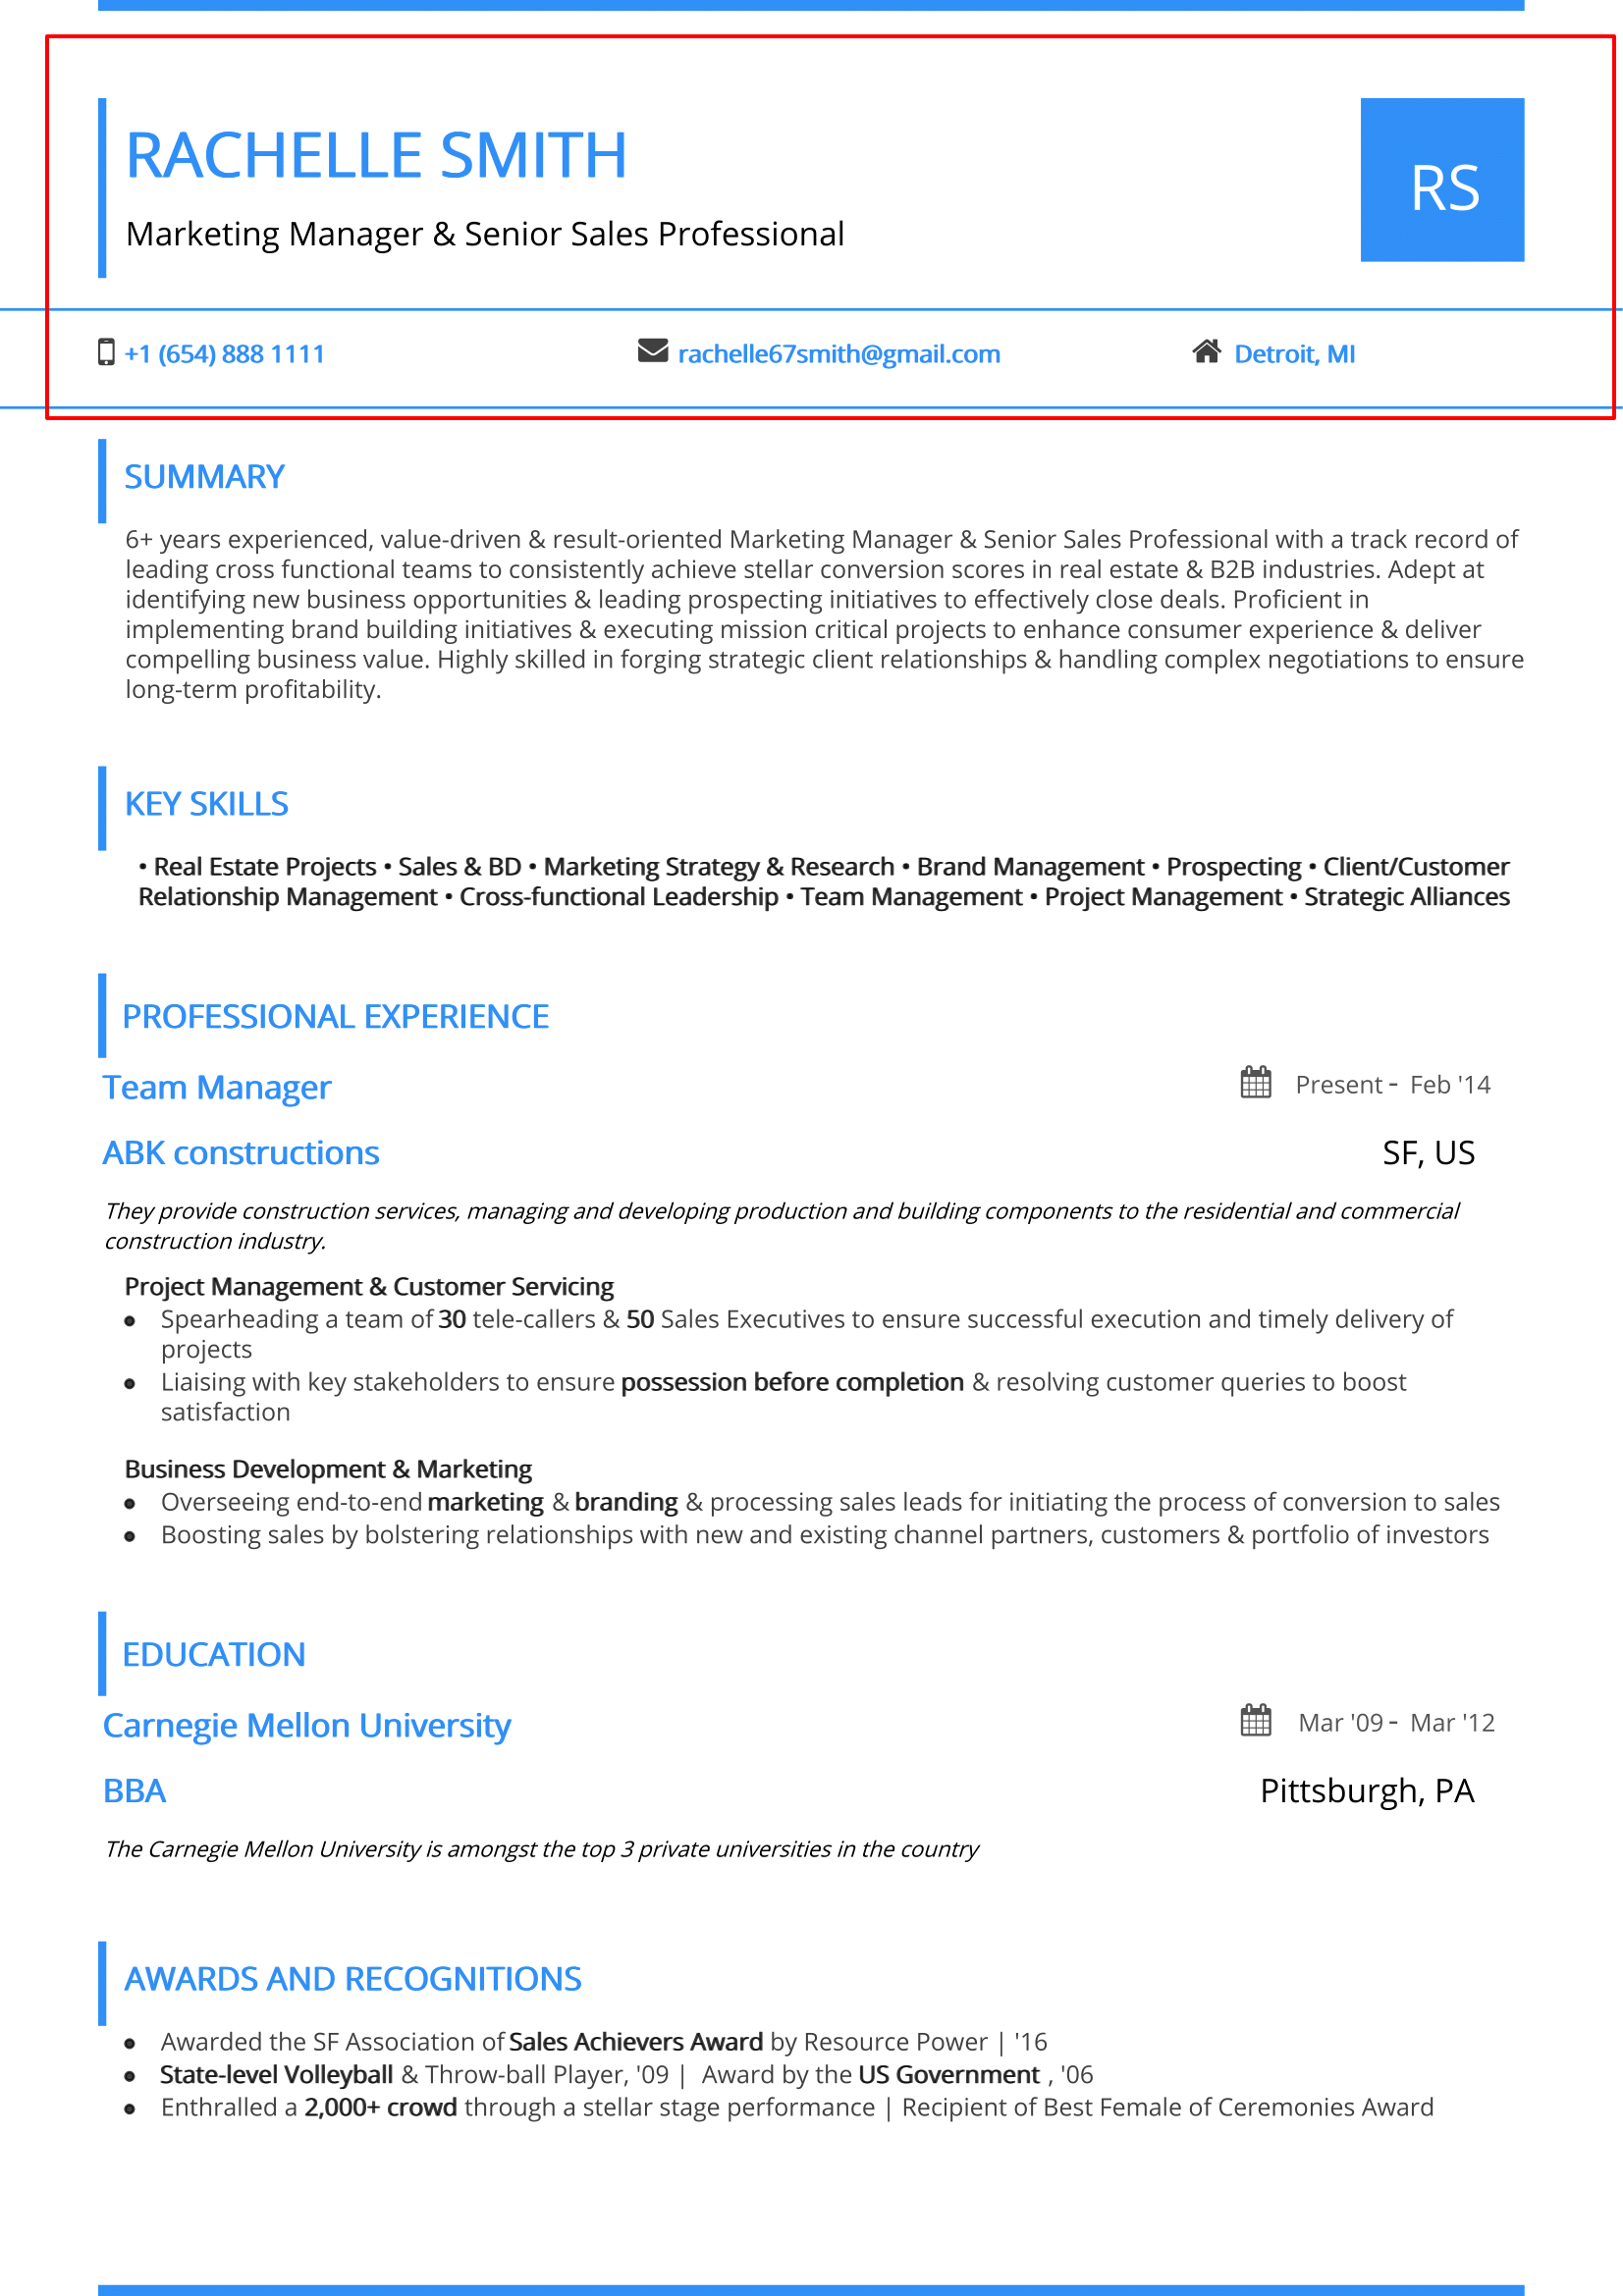 2 page resume header example